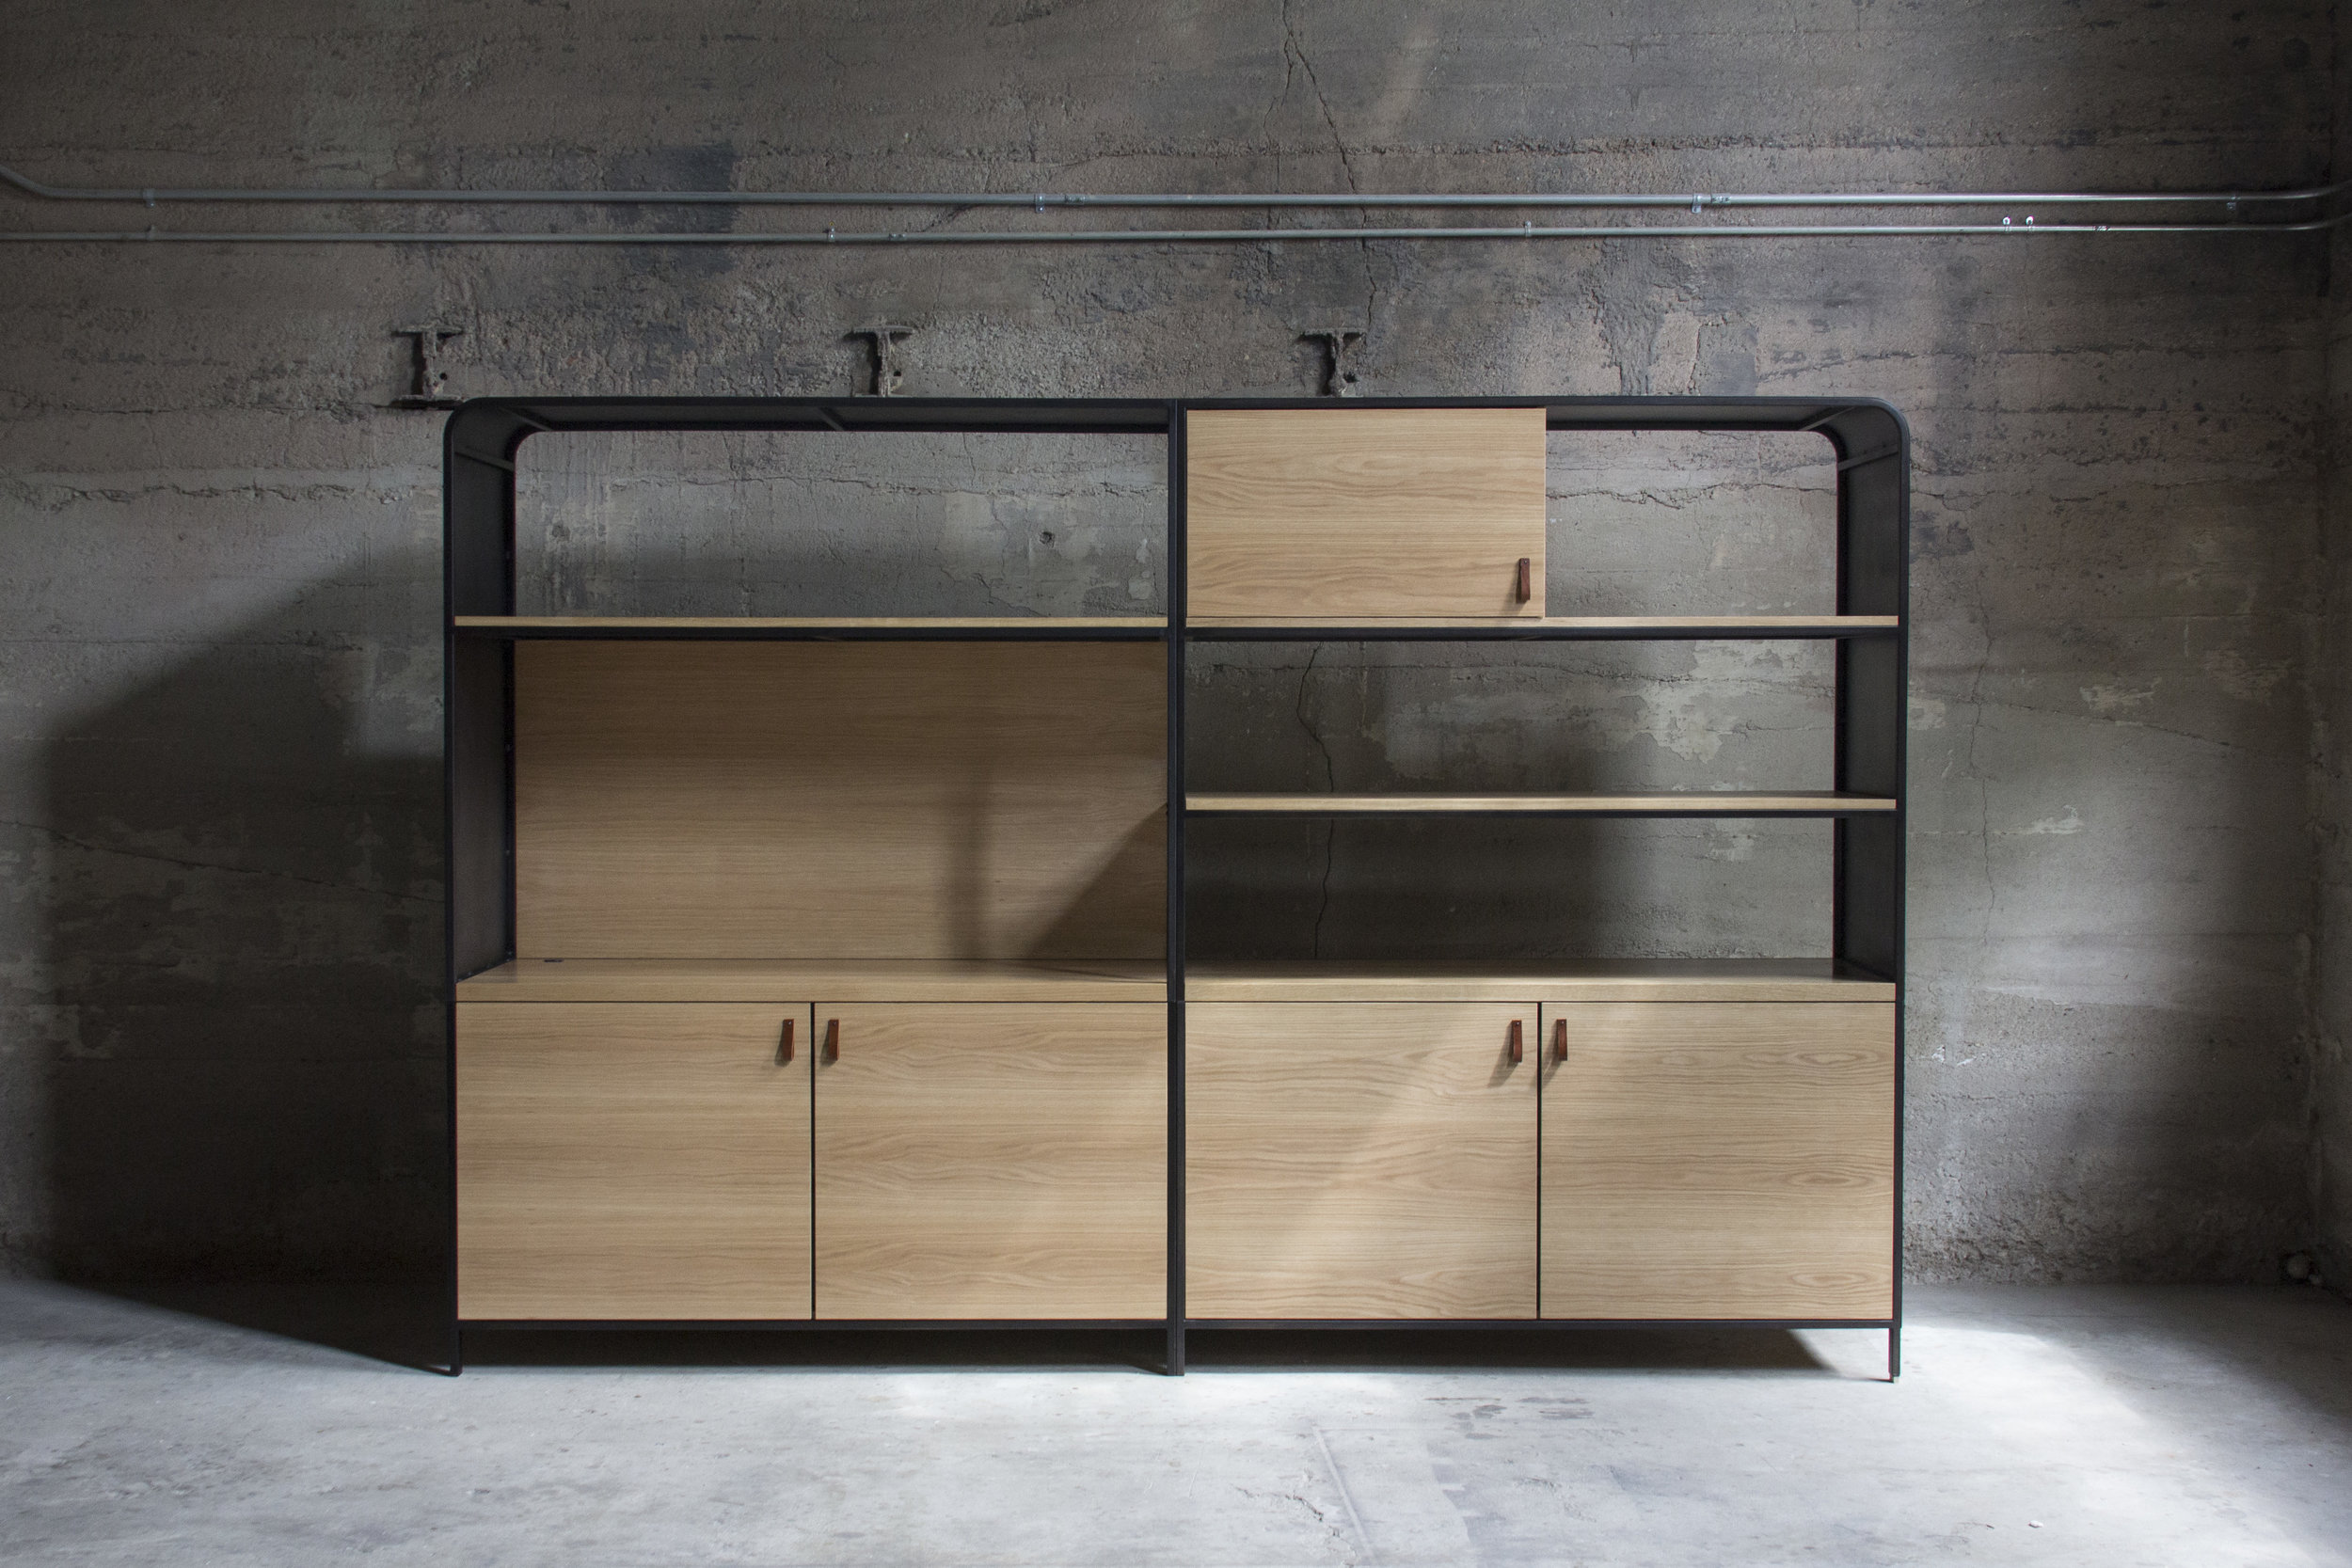 Blackened steel and oak cabinet by Synecdoche Design Studio for Rapt Studio